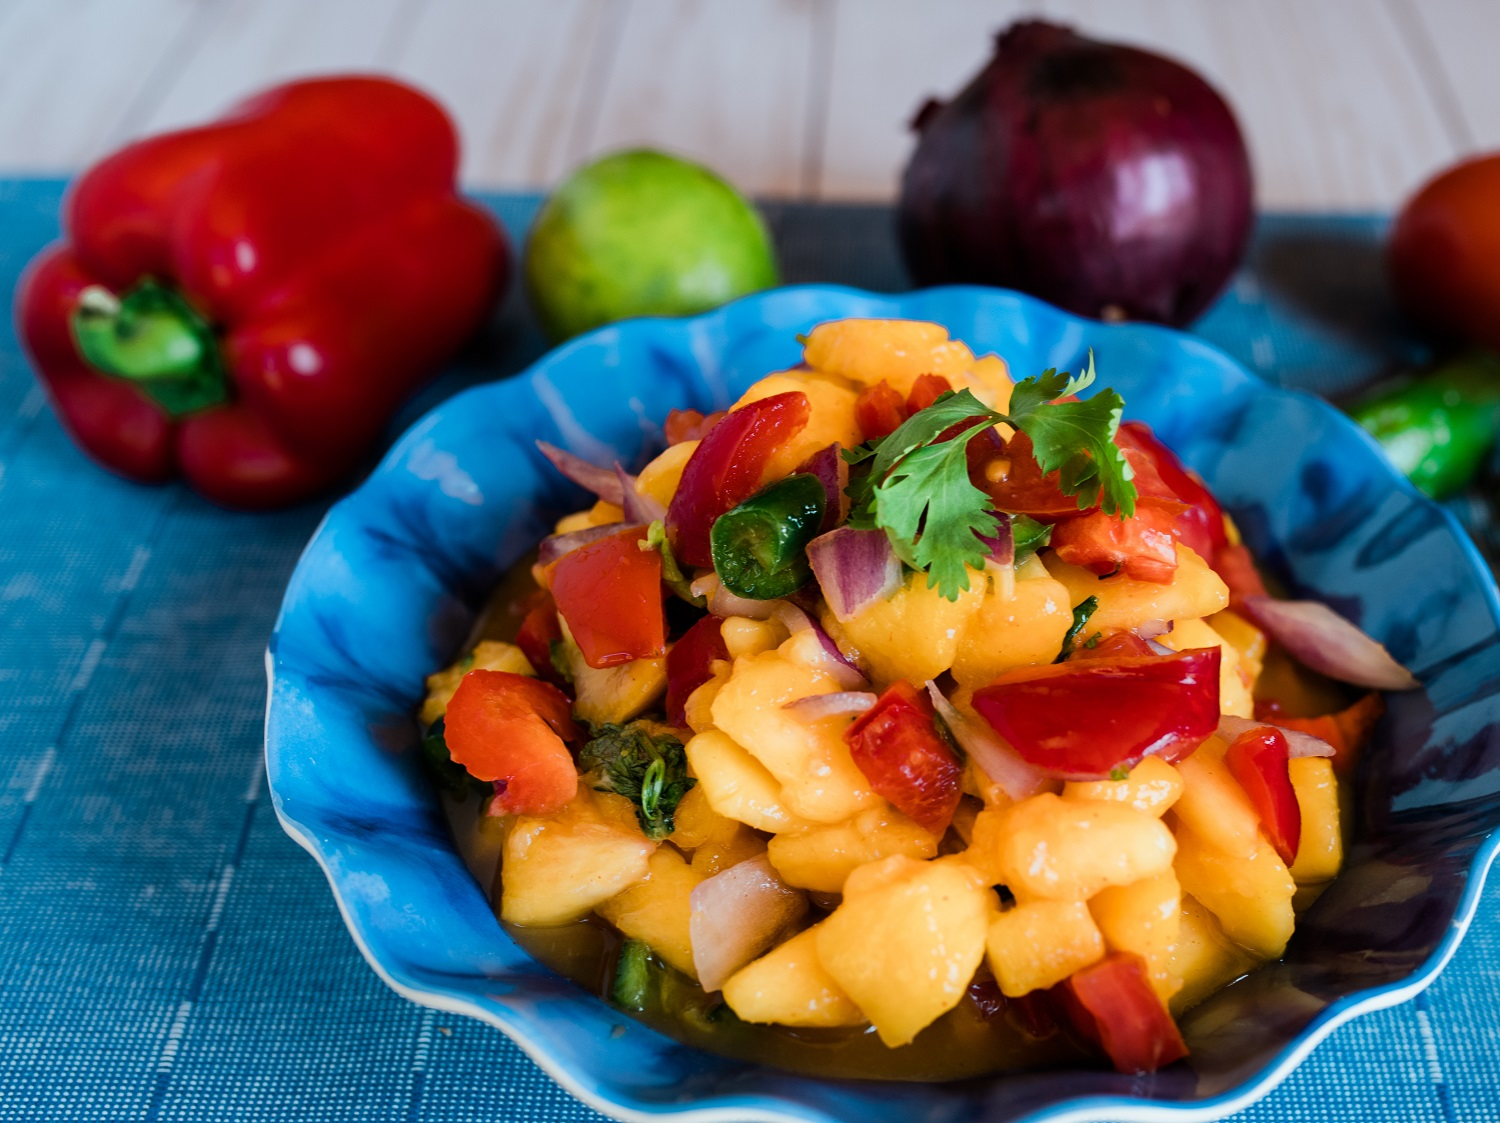 peach-salsa-with-vegetables.jpg